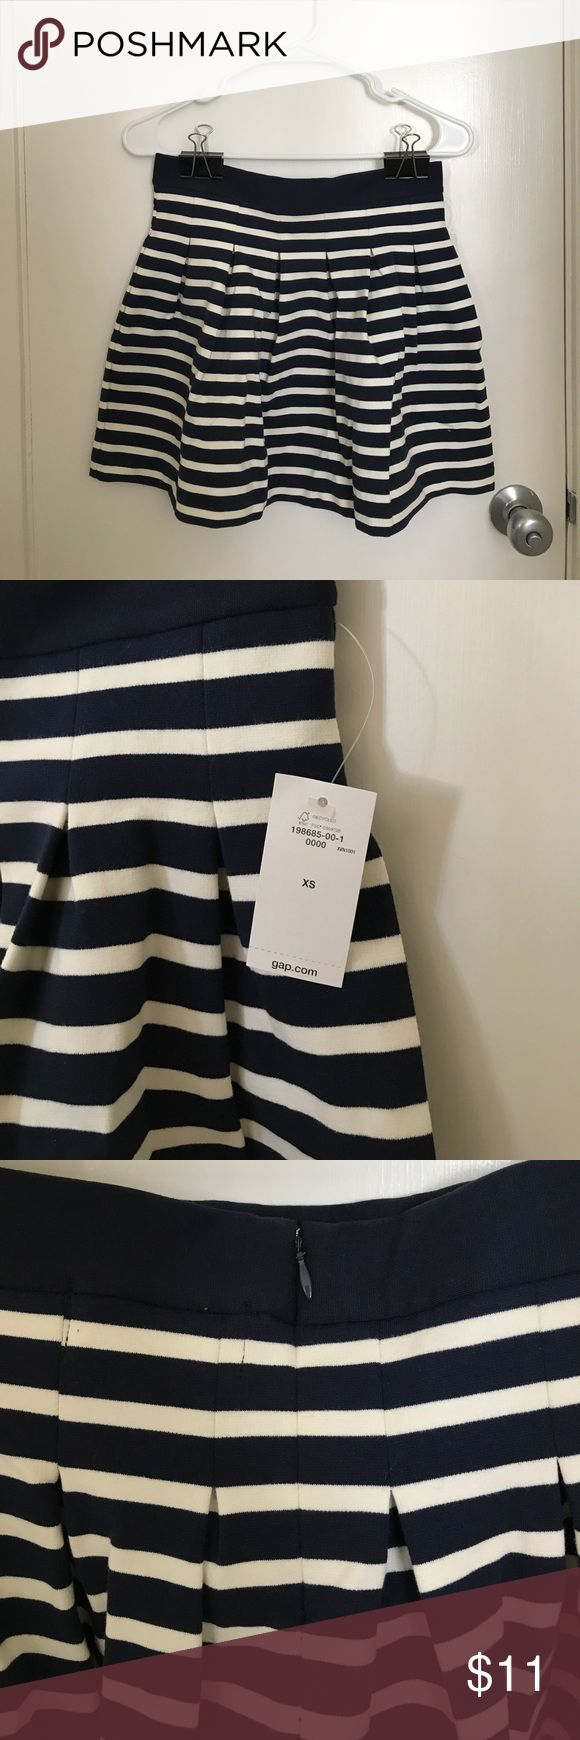 Gap nautical blue and white skirt, XS Gap dark blue and white line pattern skirt. Size XS. Never worn, new with tags. GAP Skirts Circle & Skater